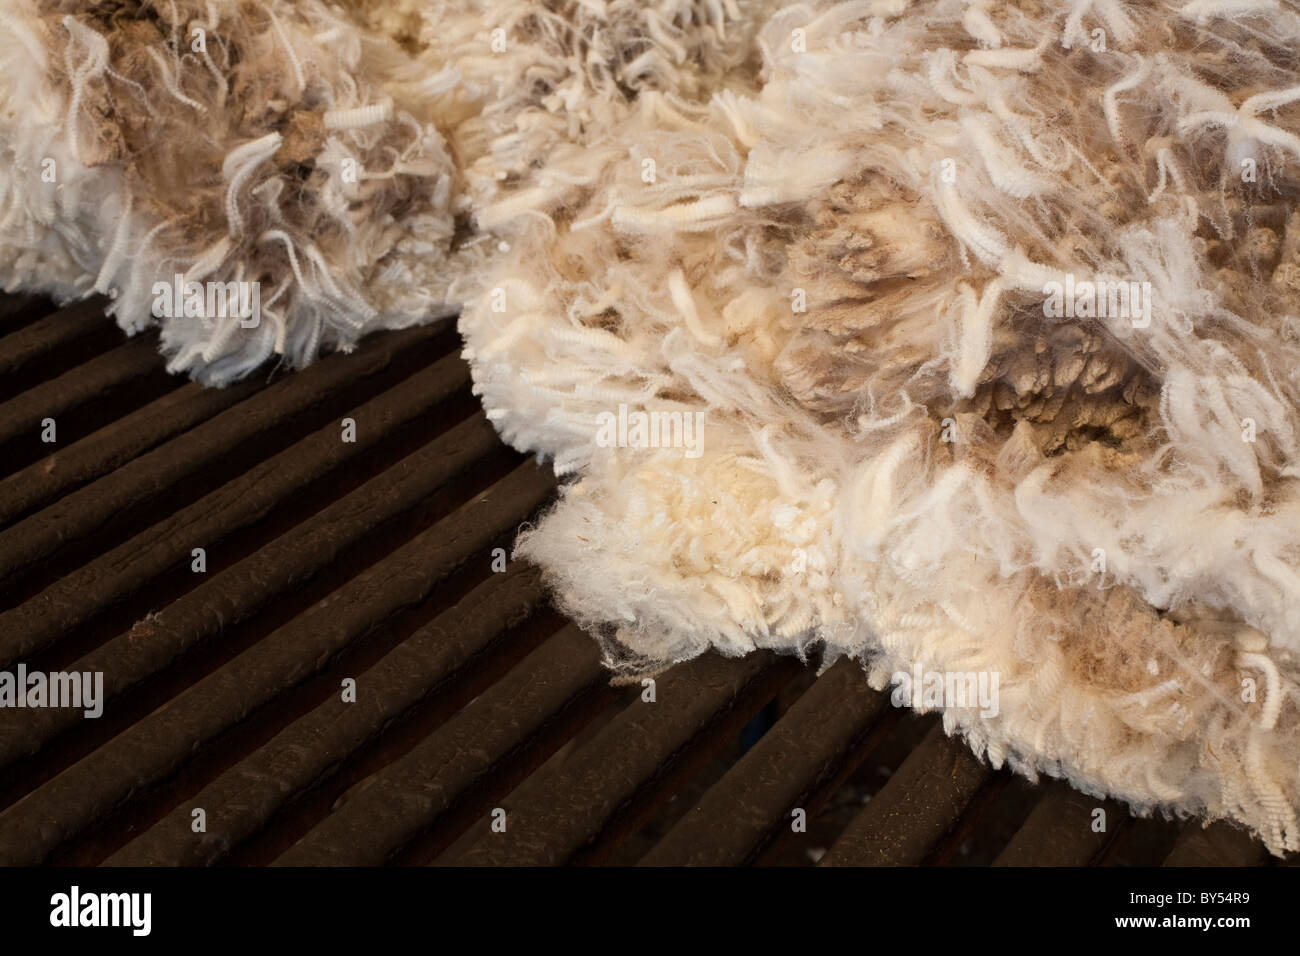 A fleece on a wool table in a shearing shed. - Stock Image